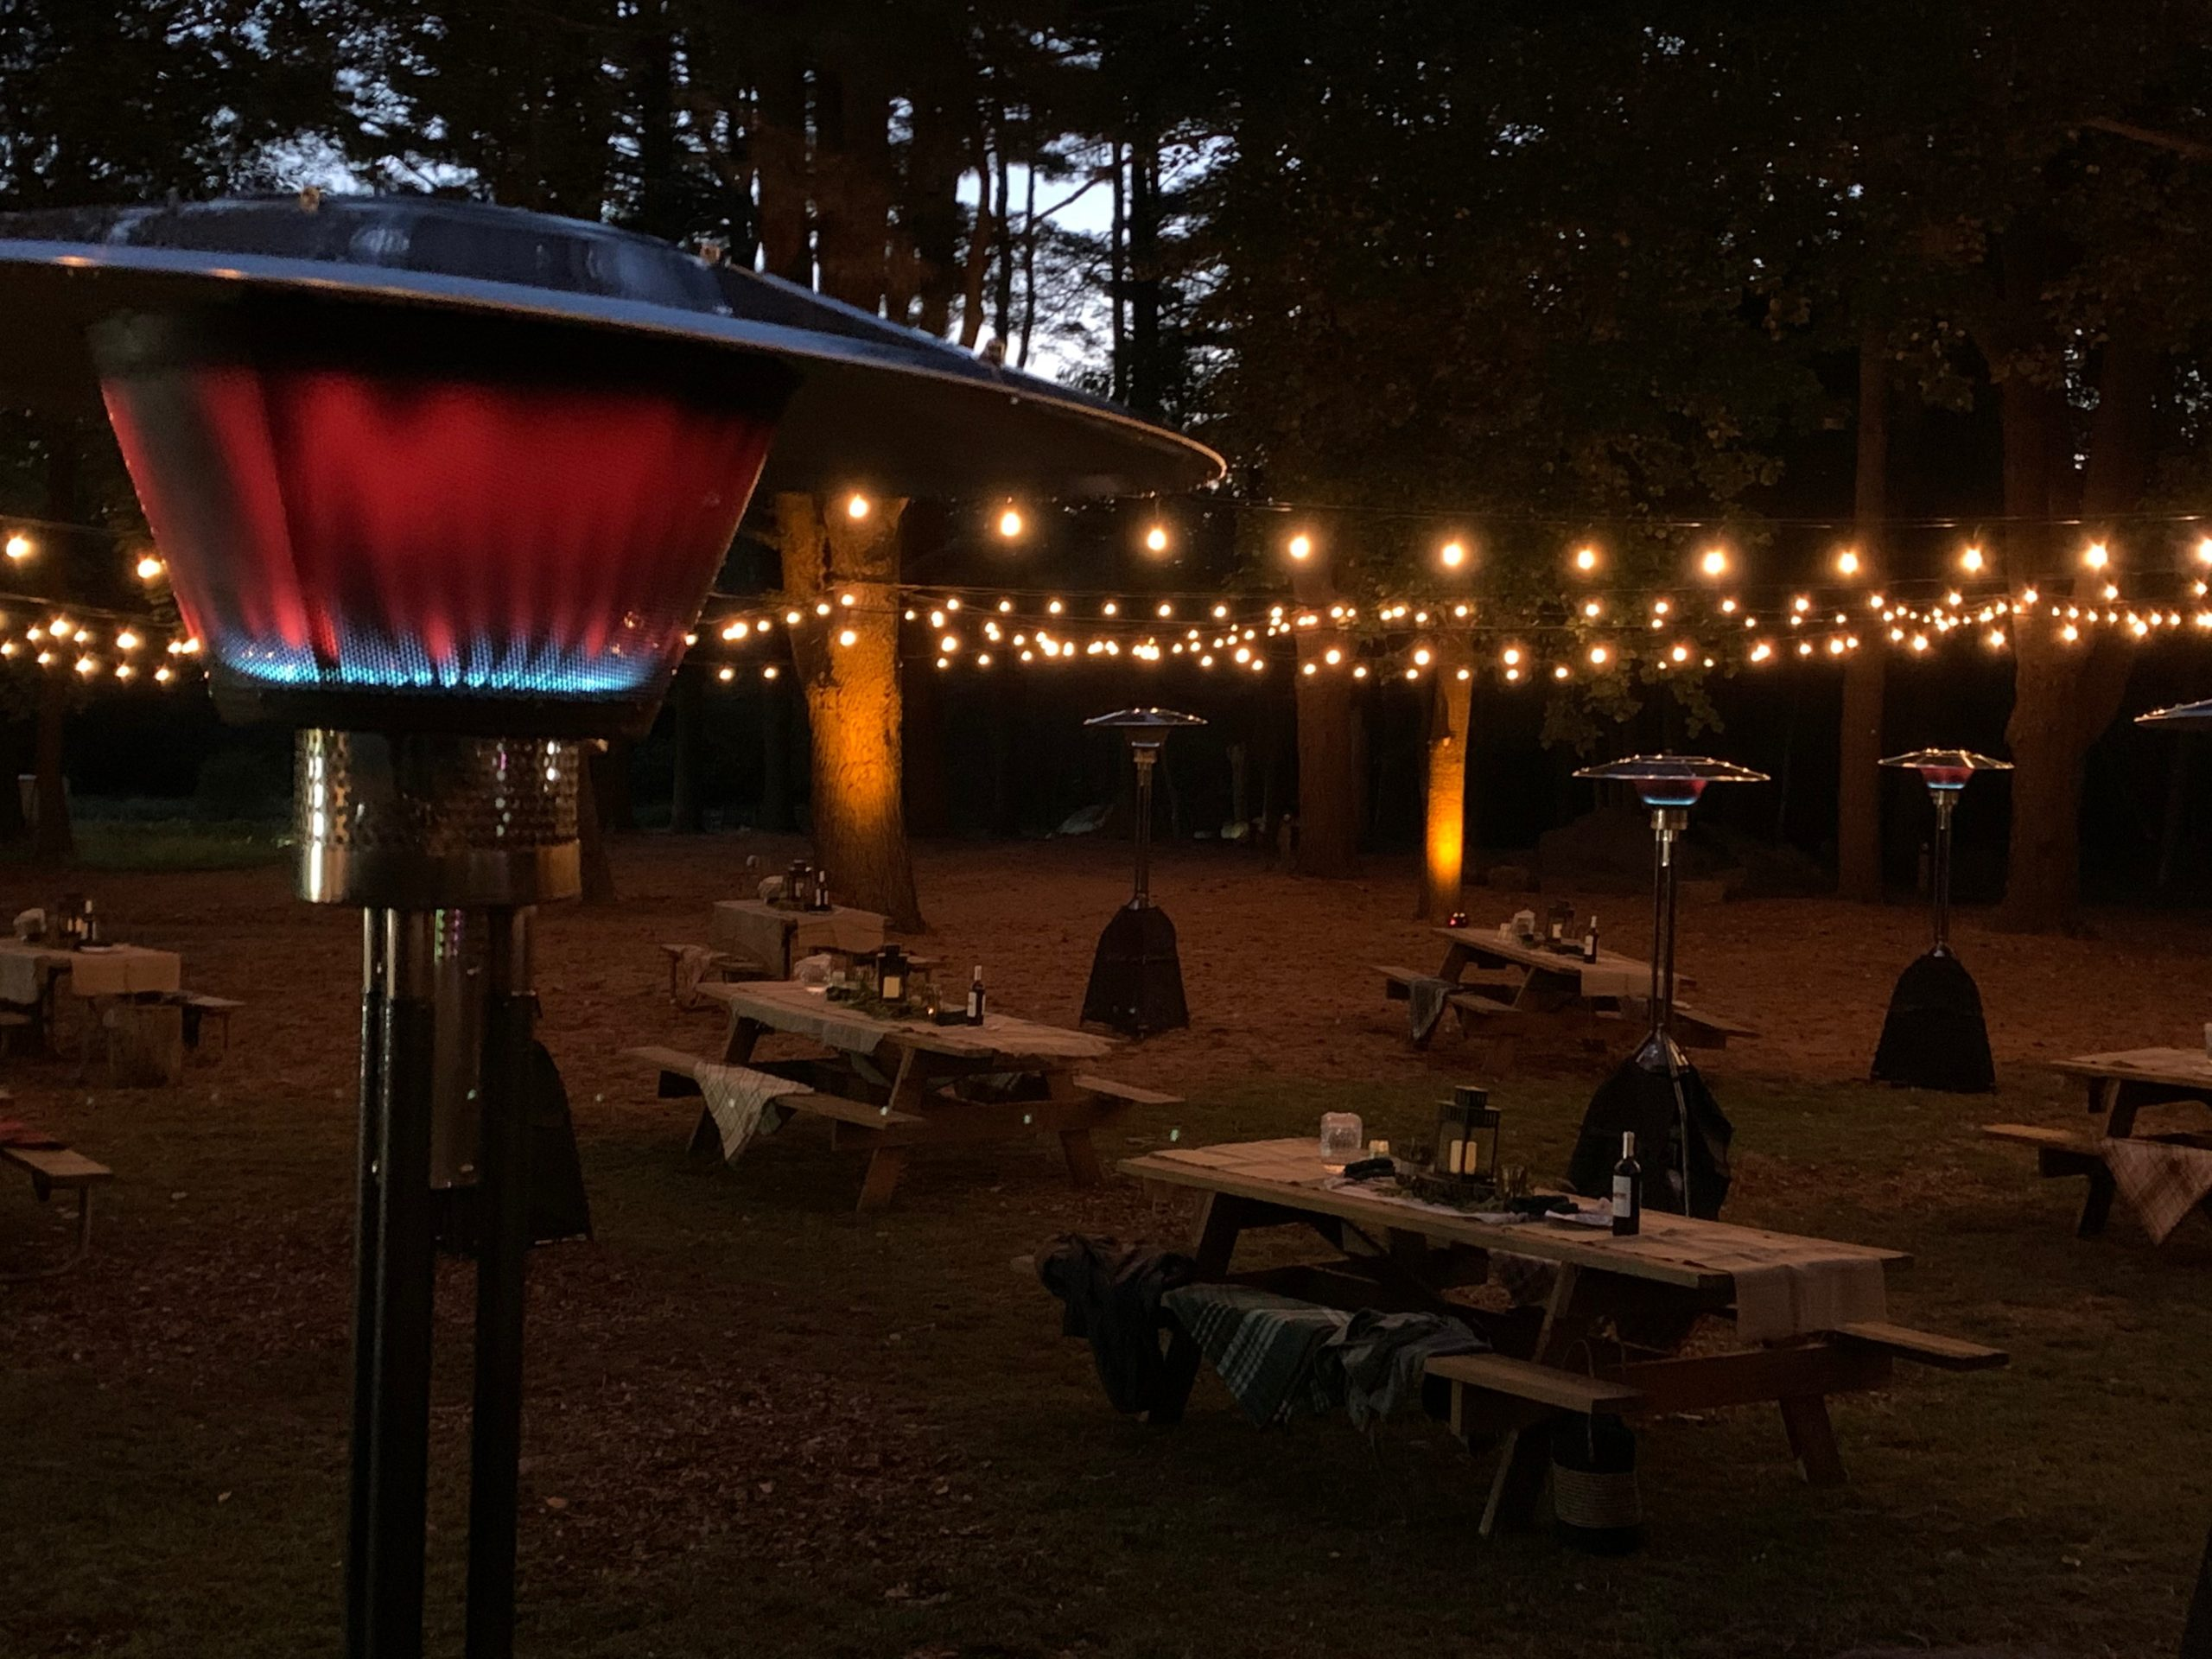 Outdoor Setup with Lights and Heaters